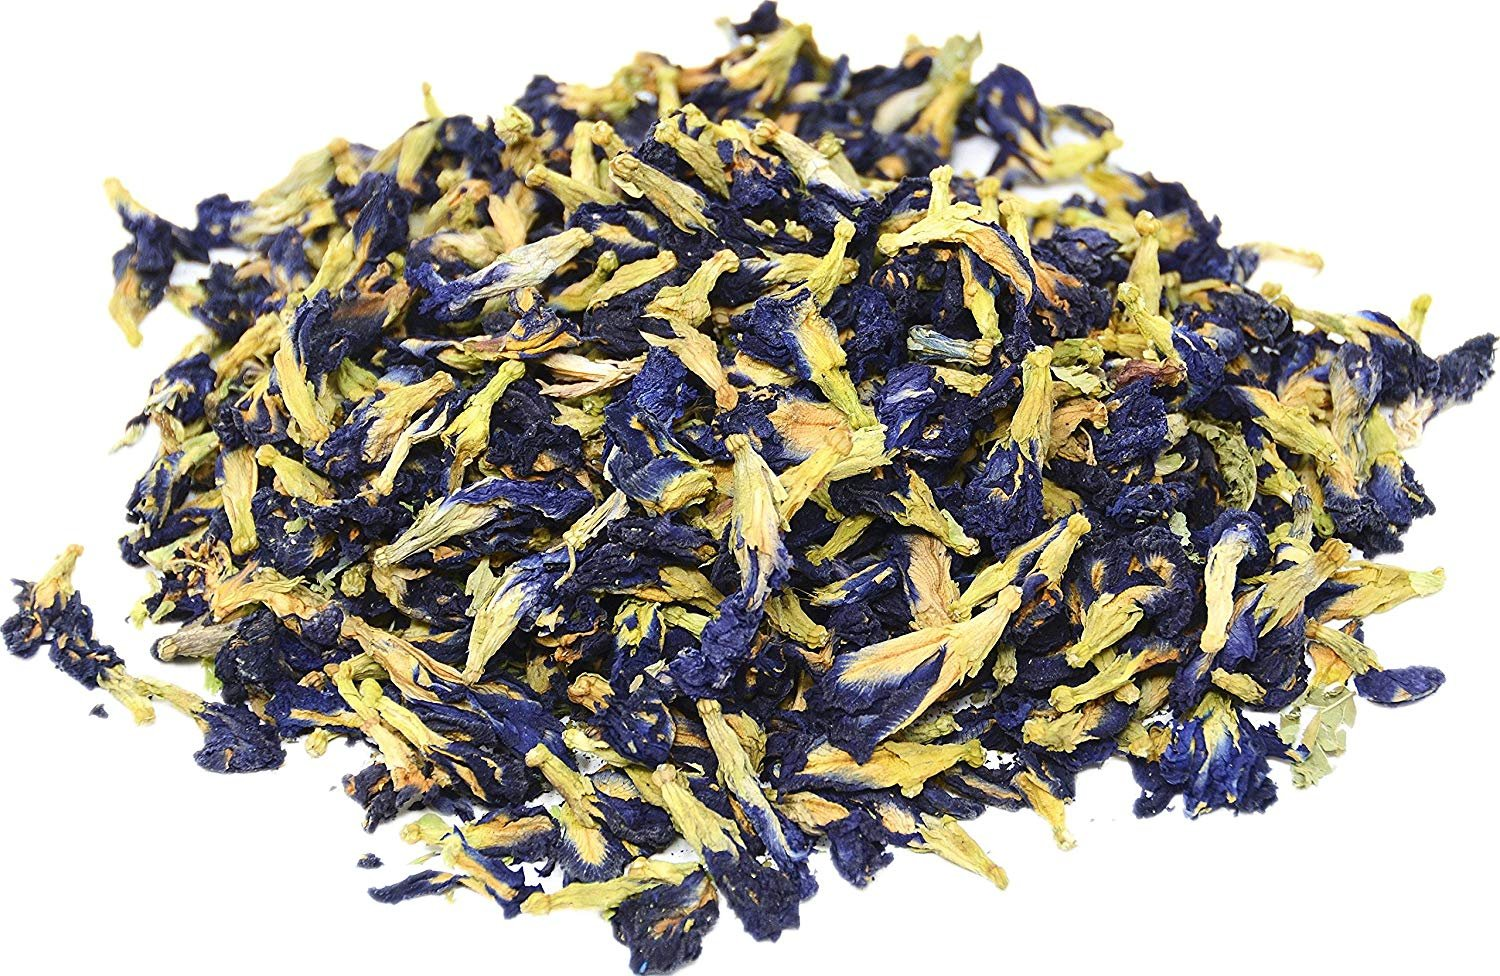 Three Squirrels 100% Natural Dried Pure Whole Butterfly Pea Flower Tea, Perfect Blue Purple Coloring for Food and Beverage, 100g by BGBULBS (Image #1)